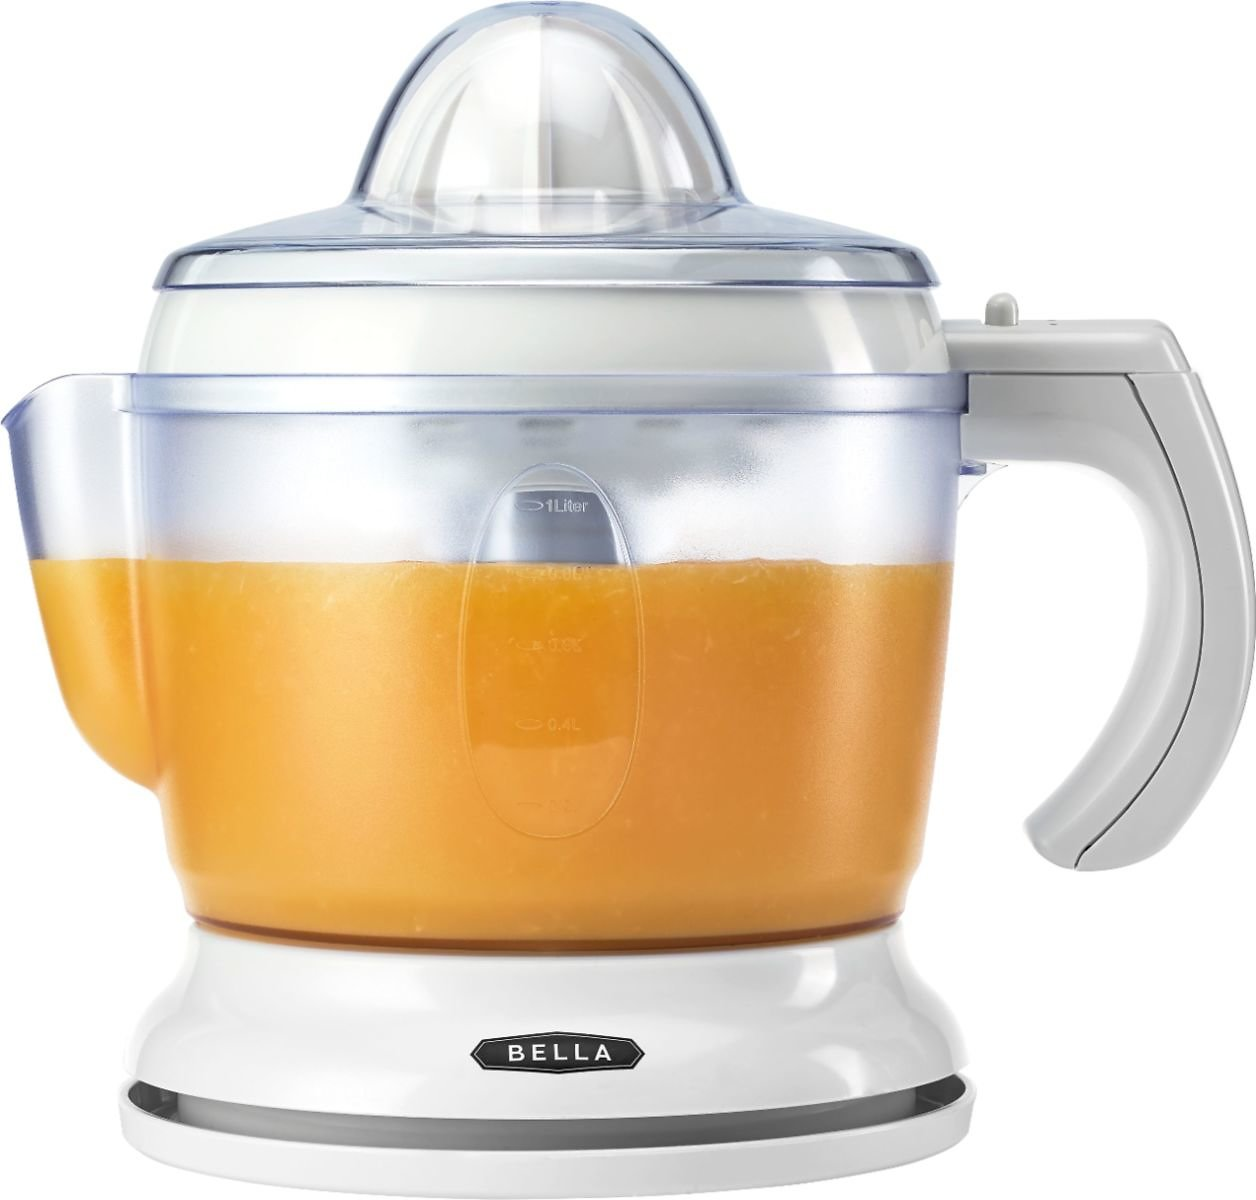 Bella Electric Citrus Juicer